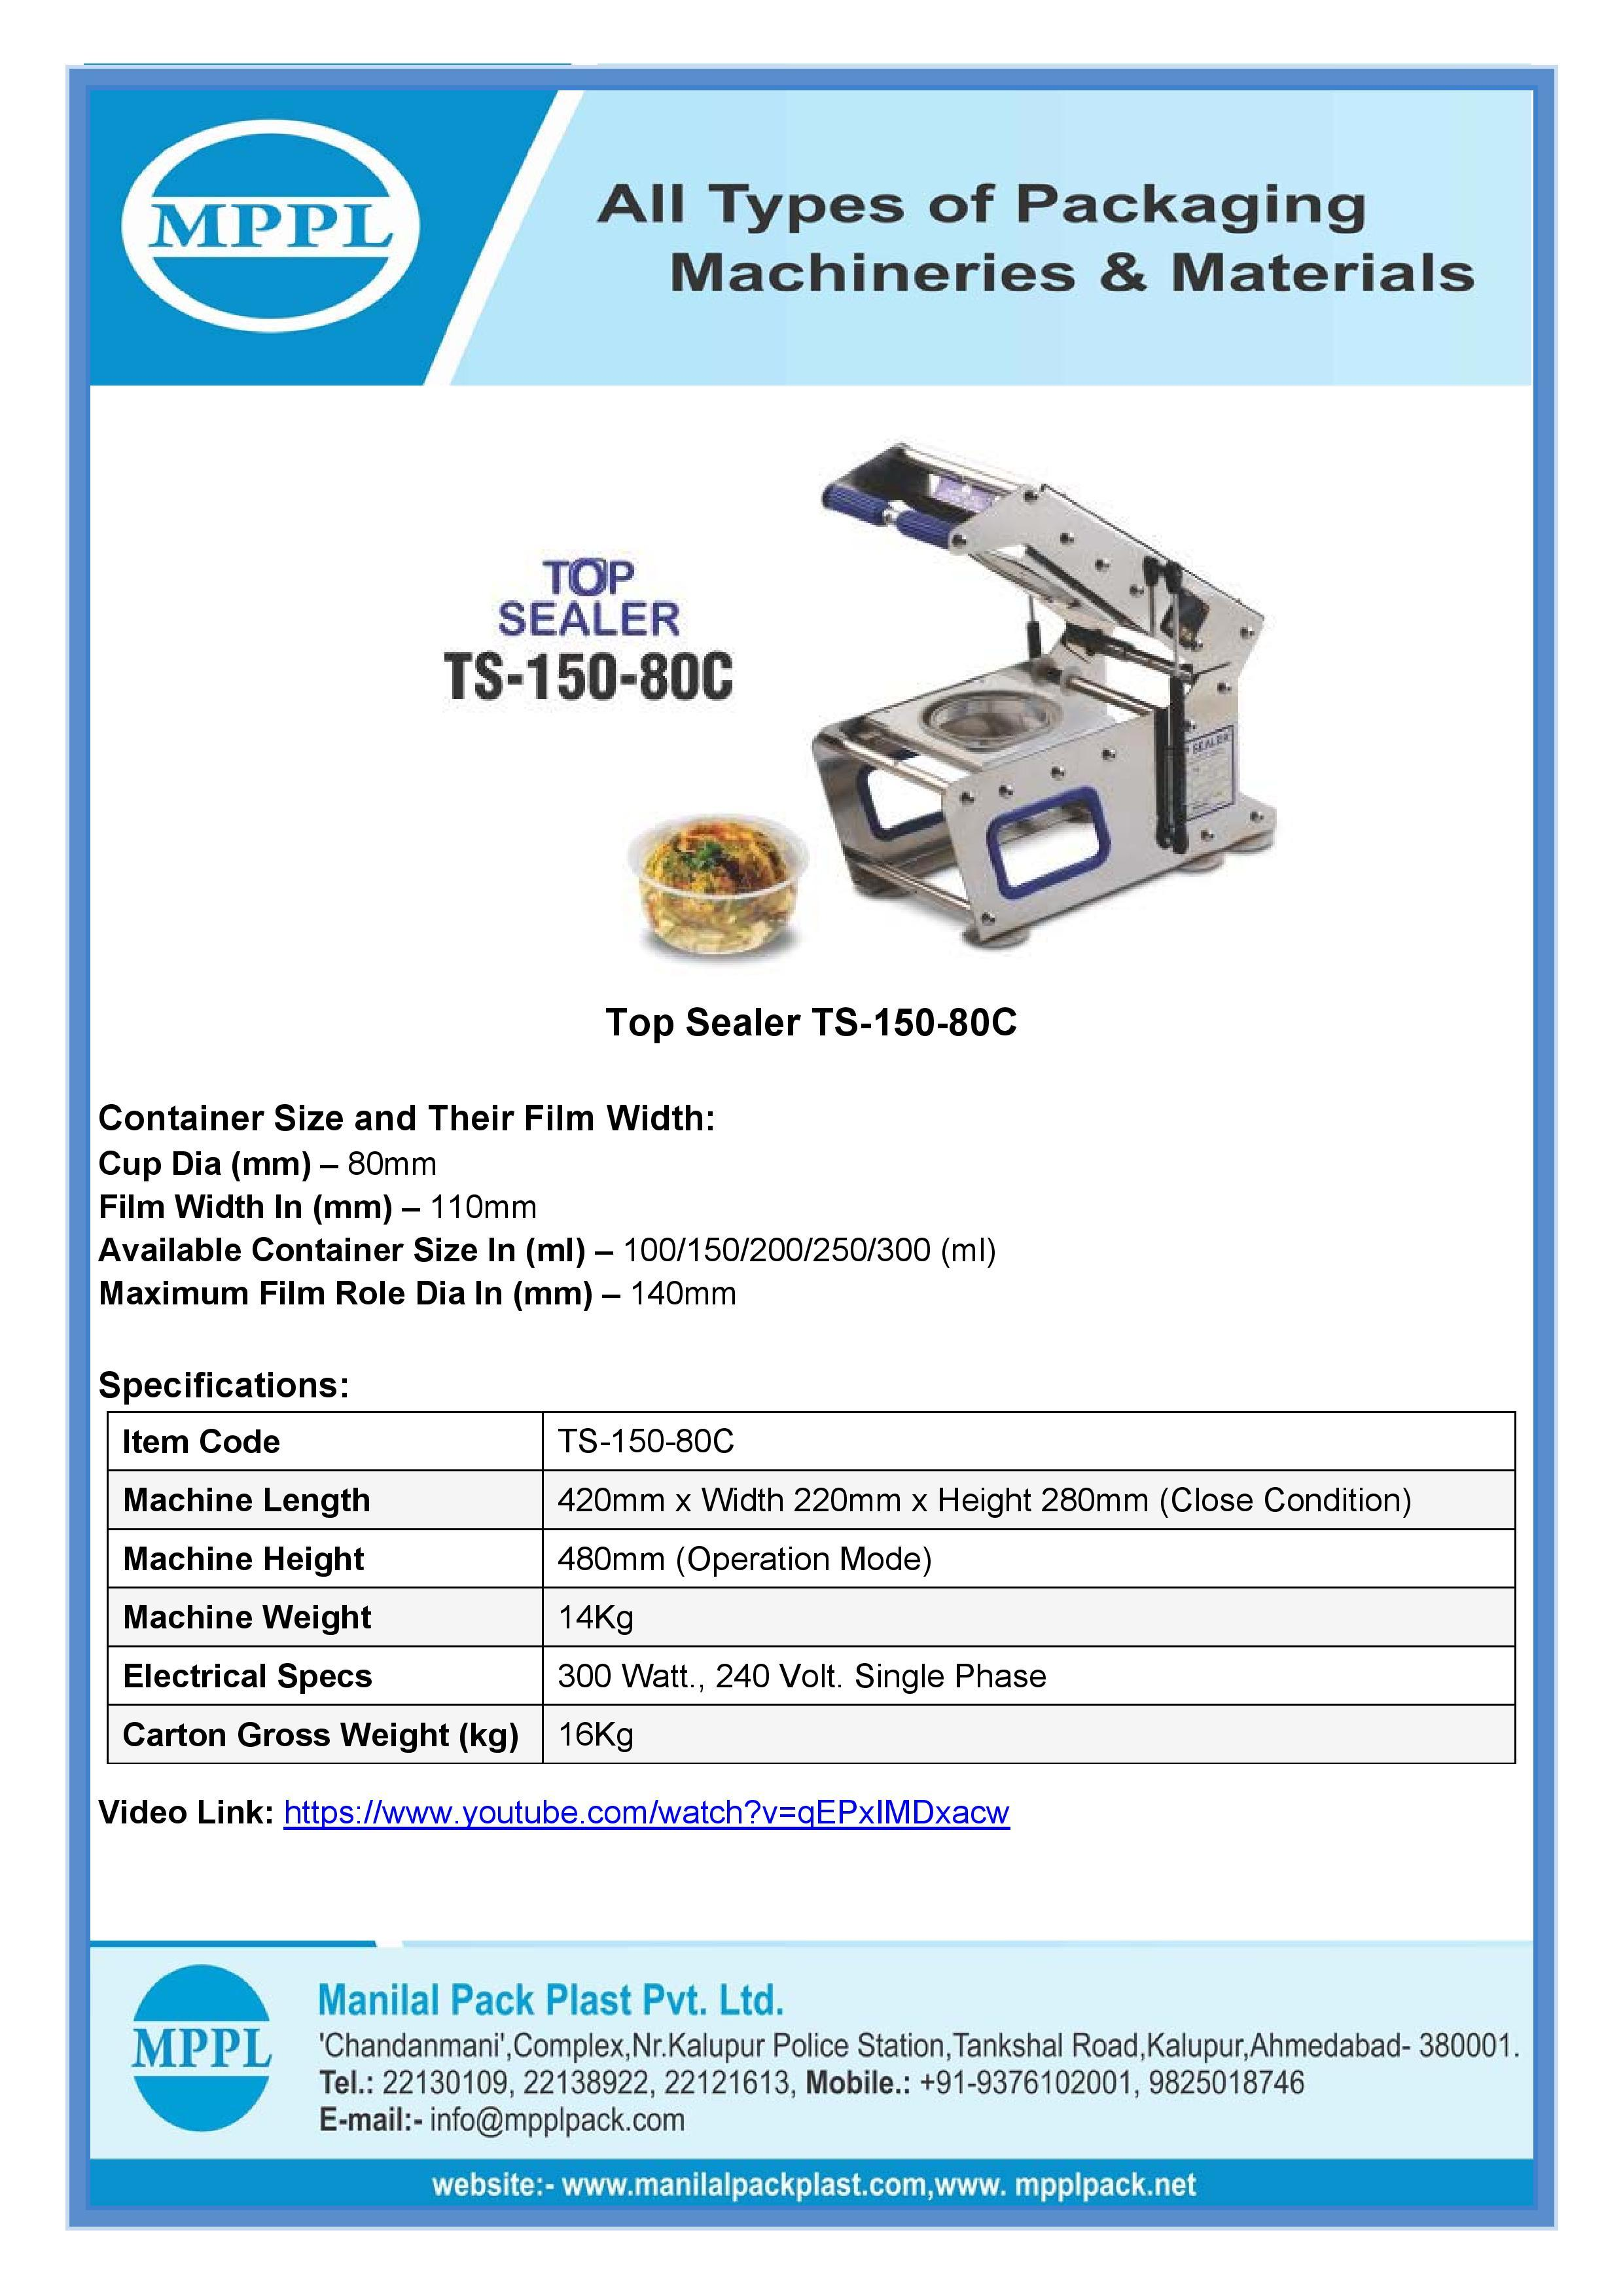 Top Sealer TS-150-80C